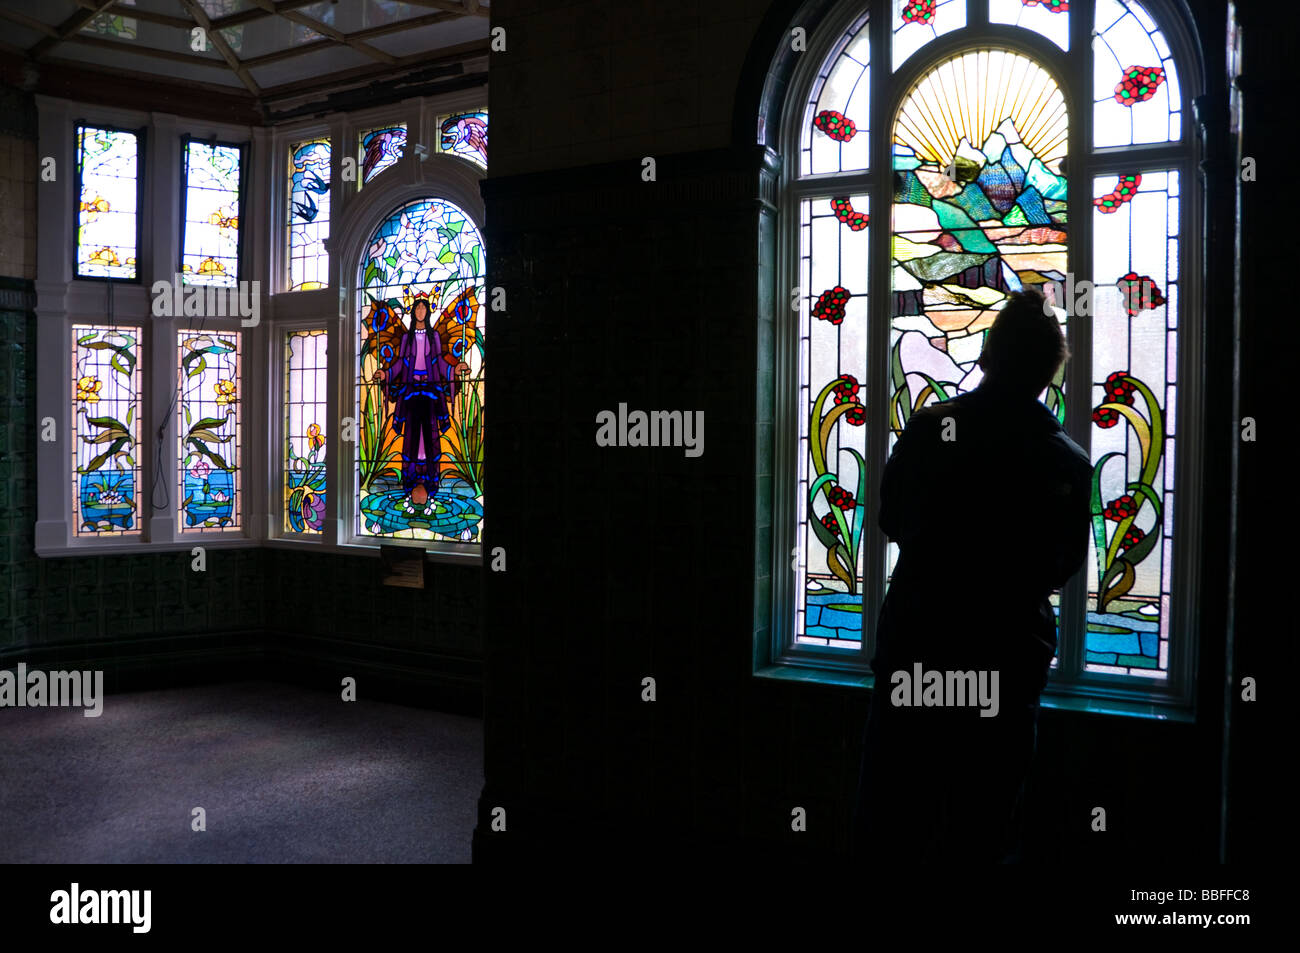 A visitor looking at a stained glass window inside Victoria Baths, Manchester, England, UK - Stock Image